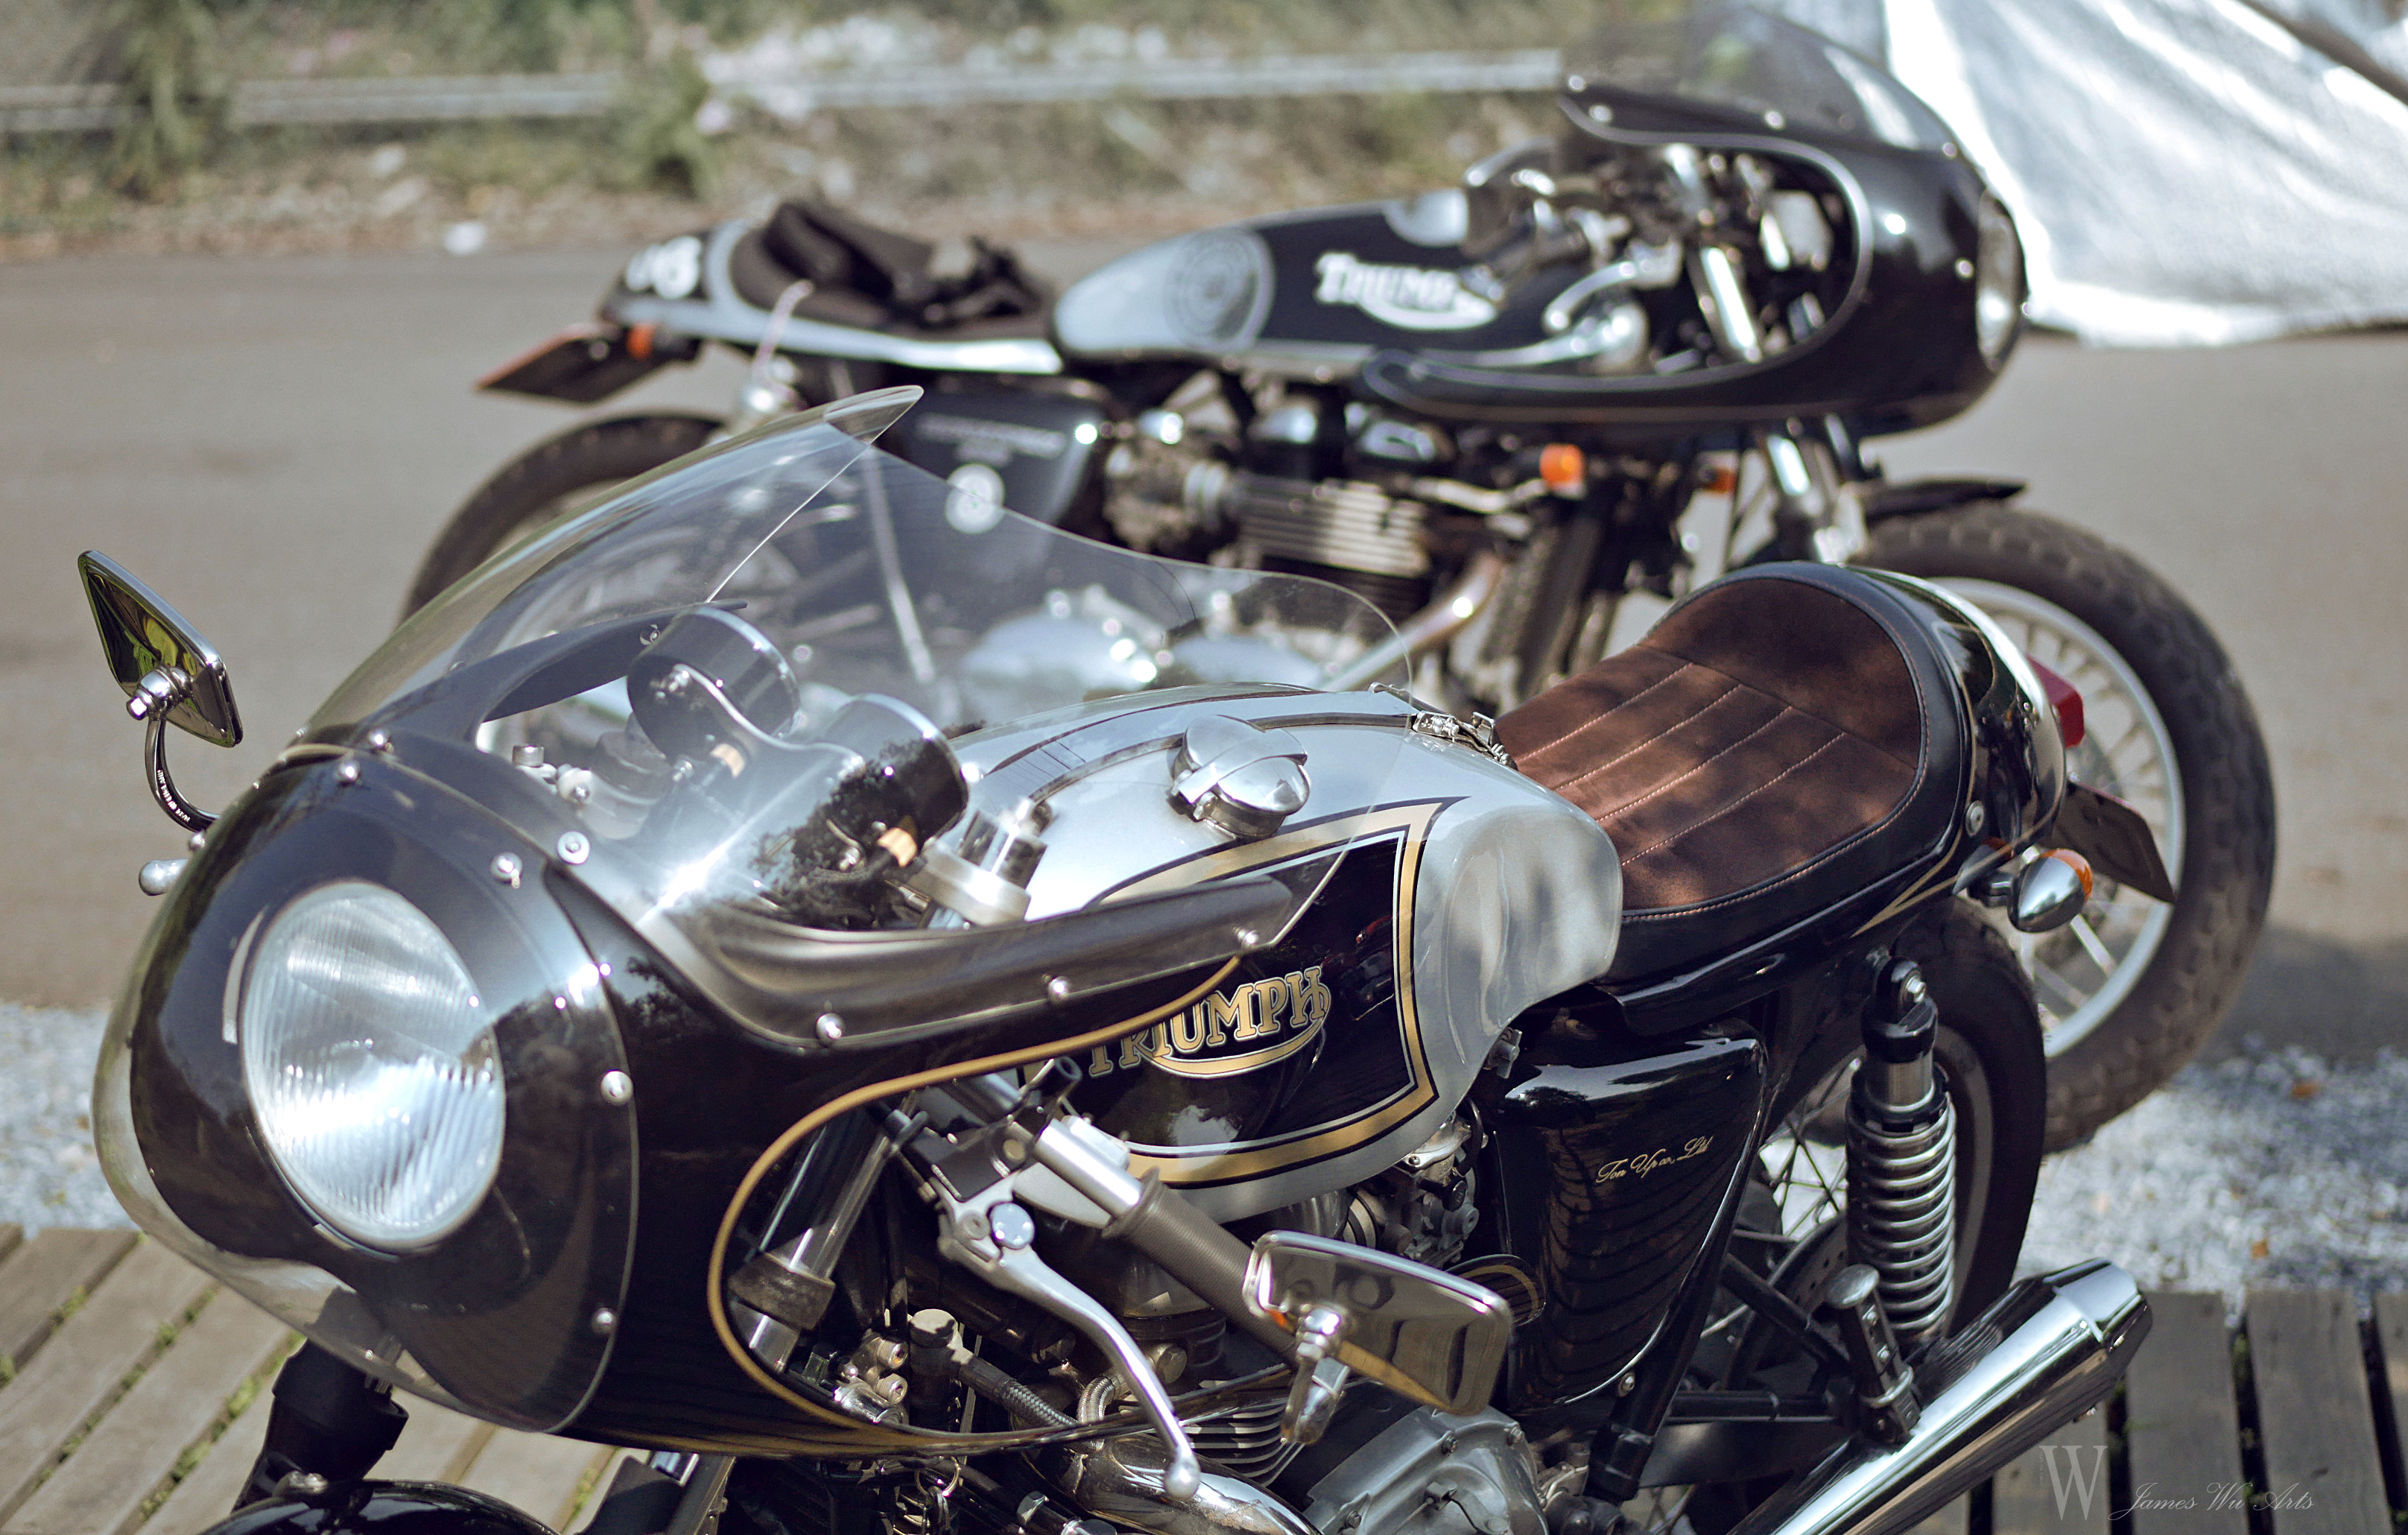 TONUP ROCKERS CAFE RACER (47)